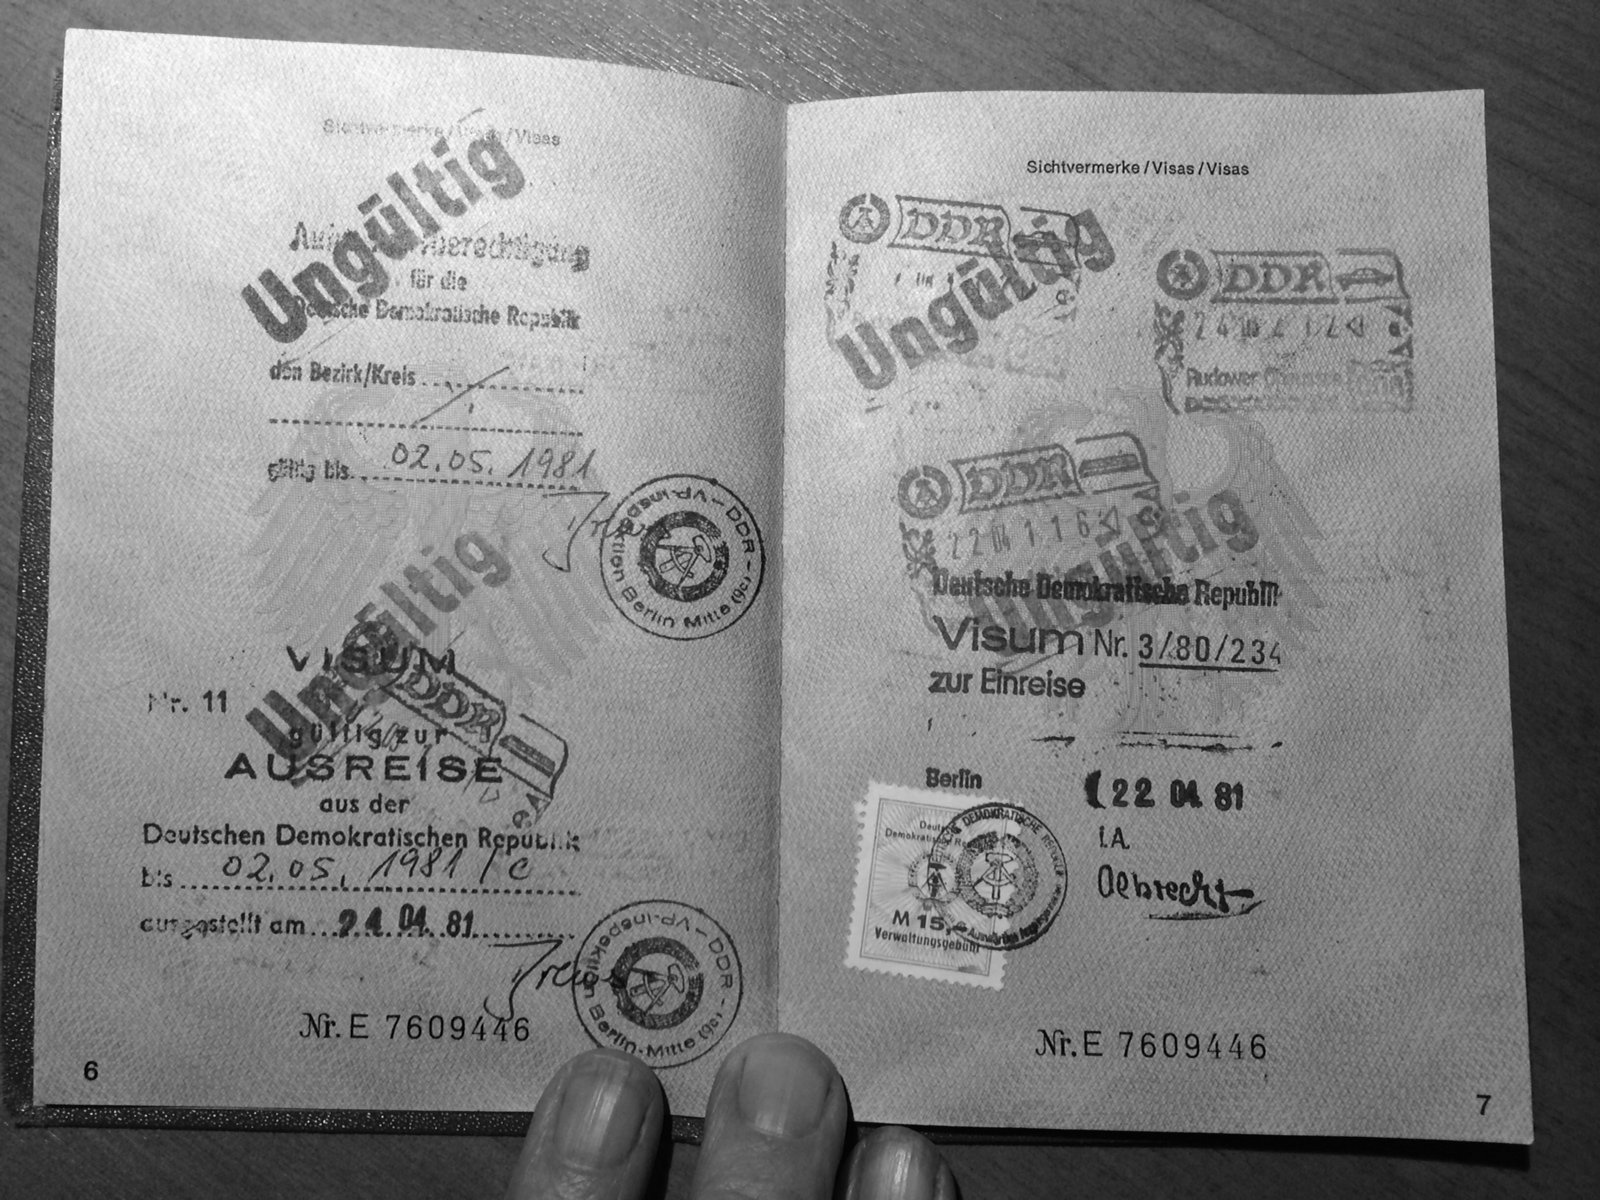 My passport from my travels to East Germany.